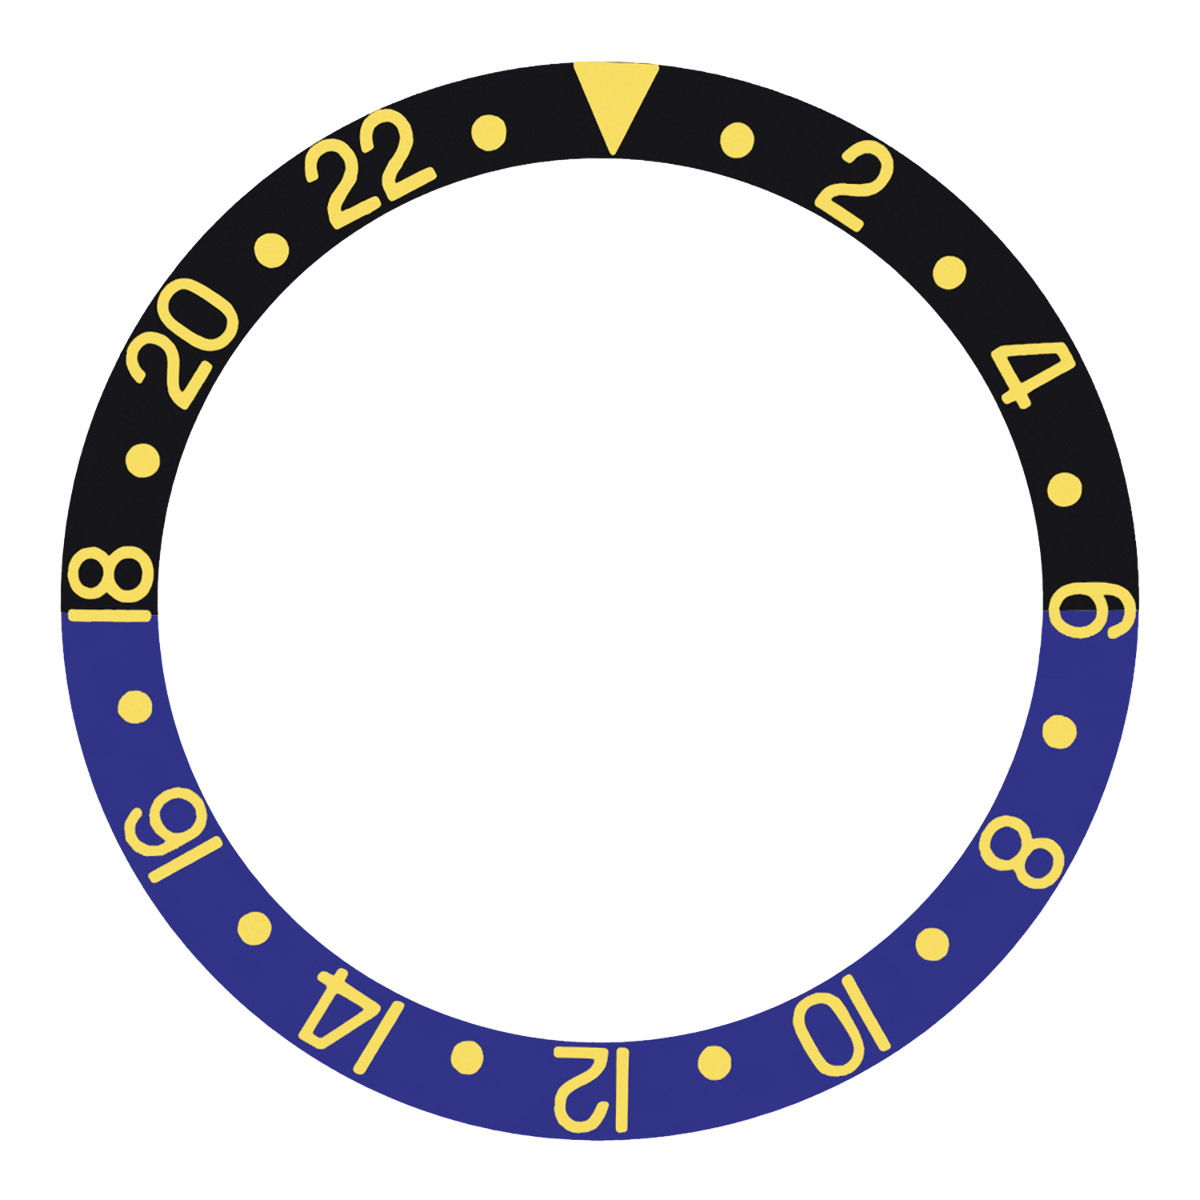 REPLACEMENT BEZEL INSERT BLACK/BLUE WITH GOLD FONT FOR WATCH 37.70MM X 30.70MM